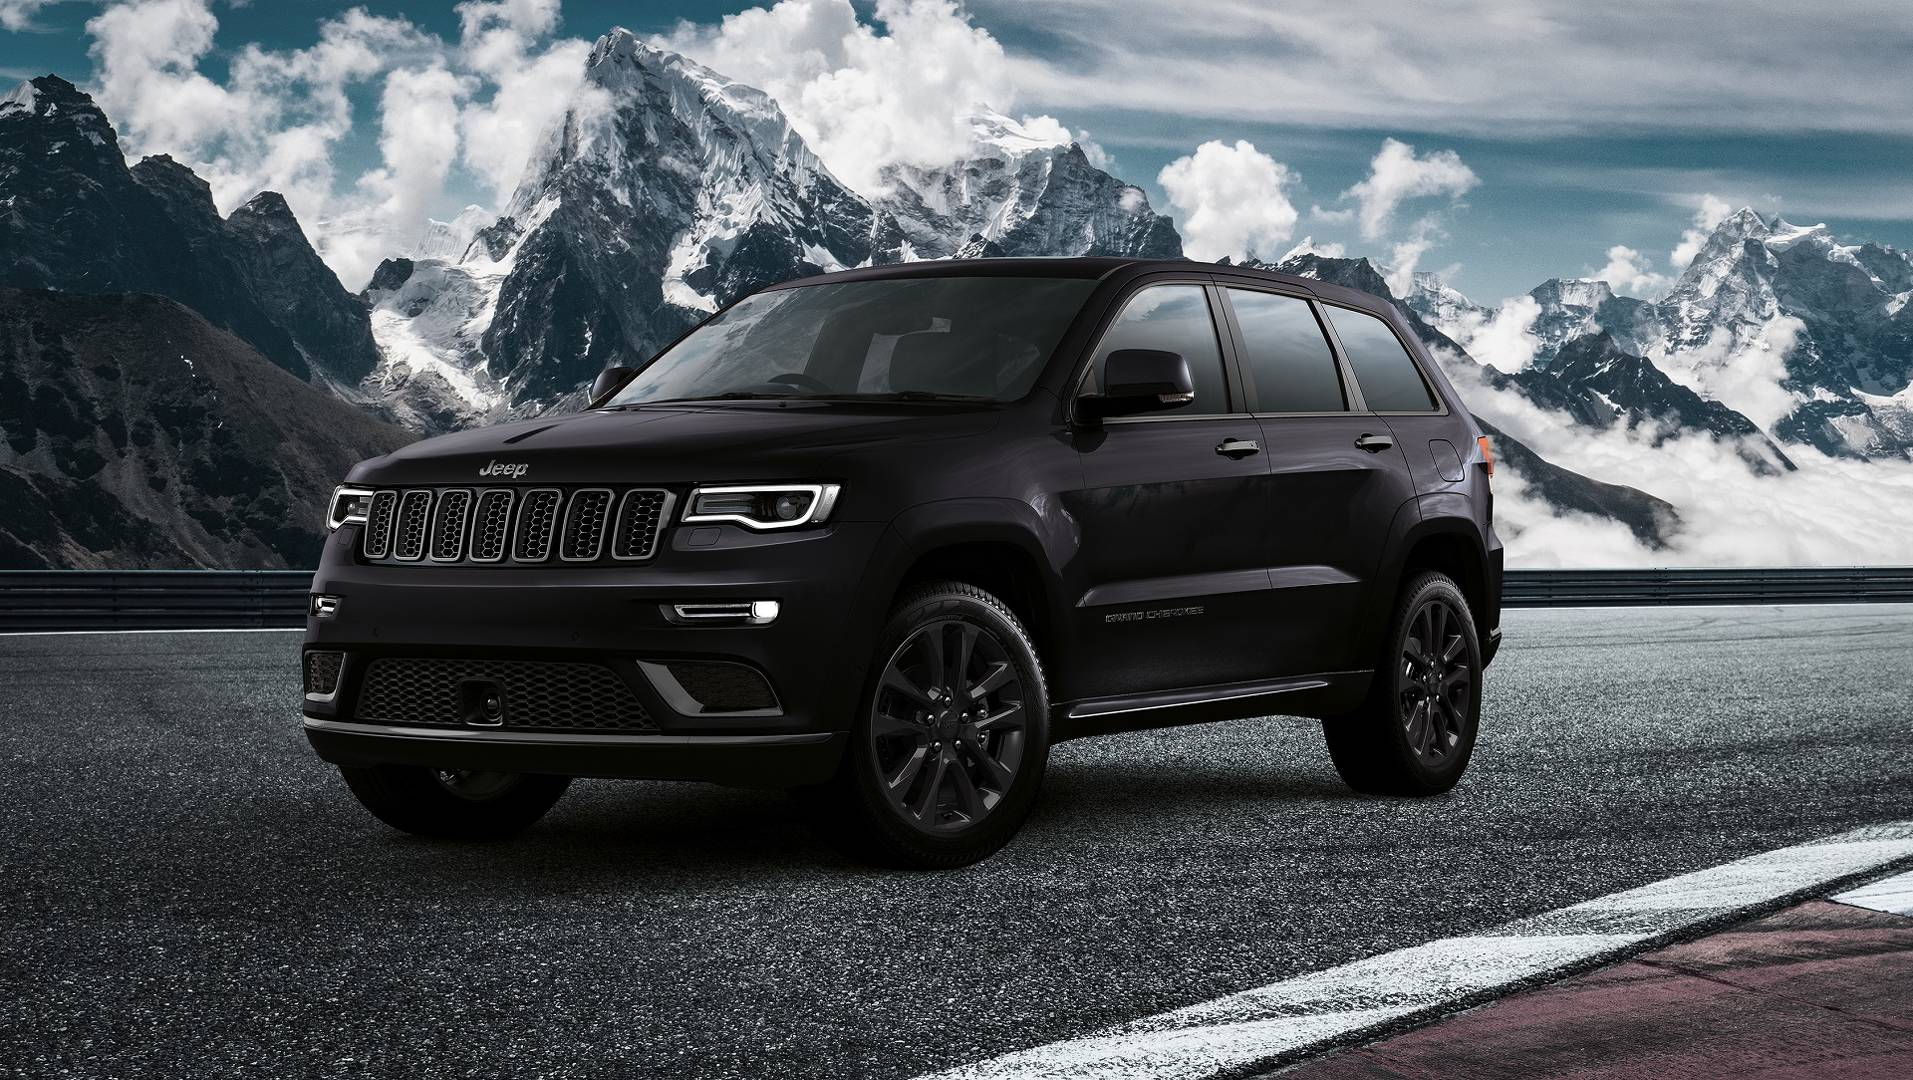 Blacked Out Jeep >> Jeep Expands European Lineup With Grand Cherokee S Special Edition - autoevolution